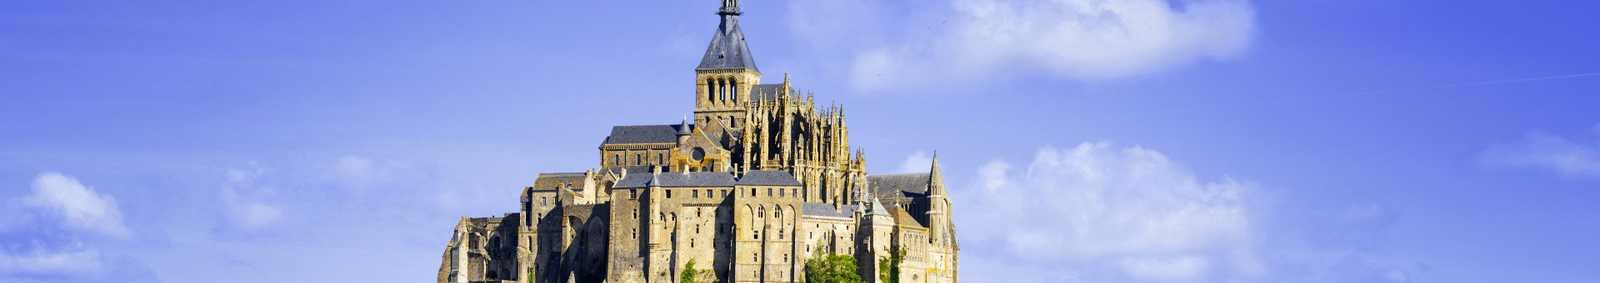 aerial_view_of_the_saint_malo_city_of_privateers